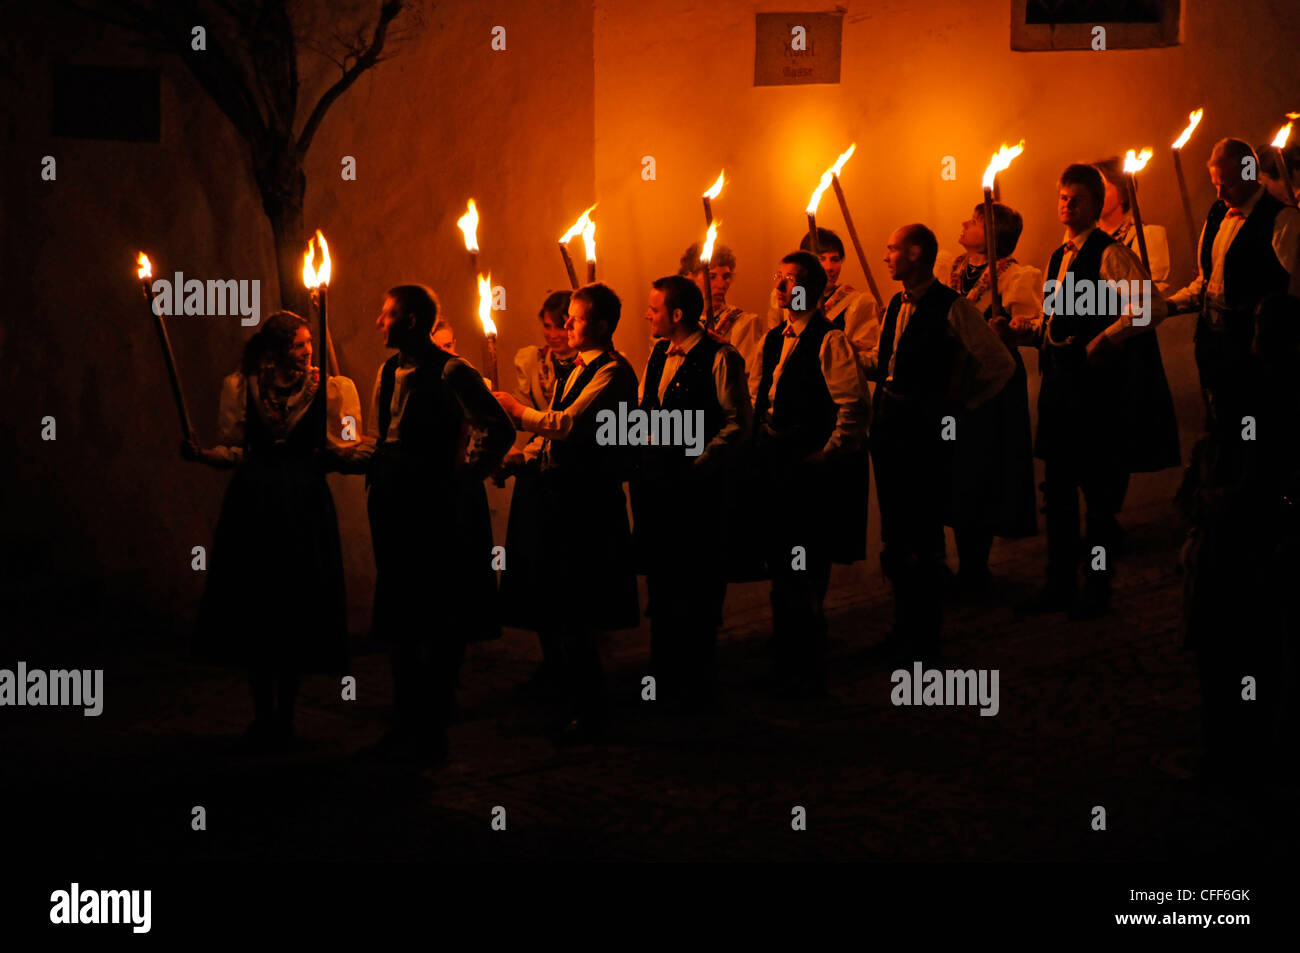 Torch procession at Easter at night, Alto Adige, South Tyrol, Italy, Europe Stock Photo